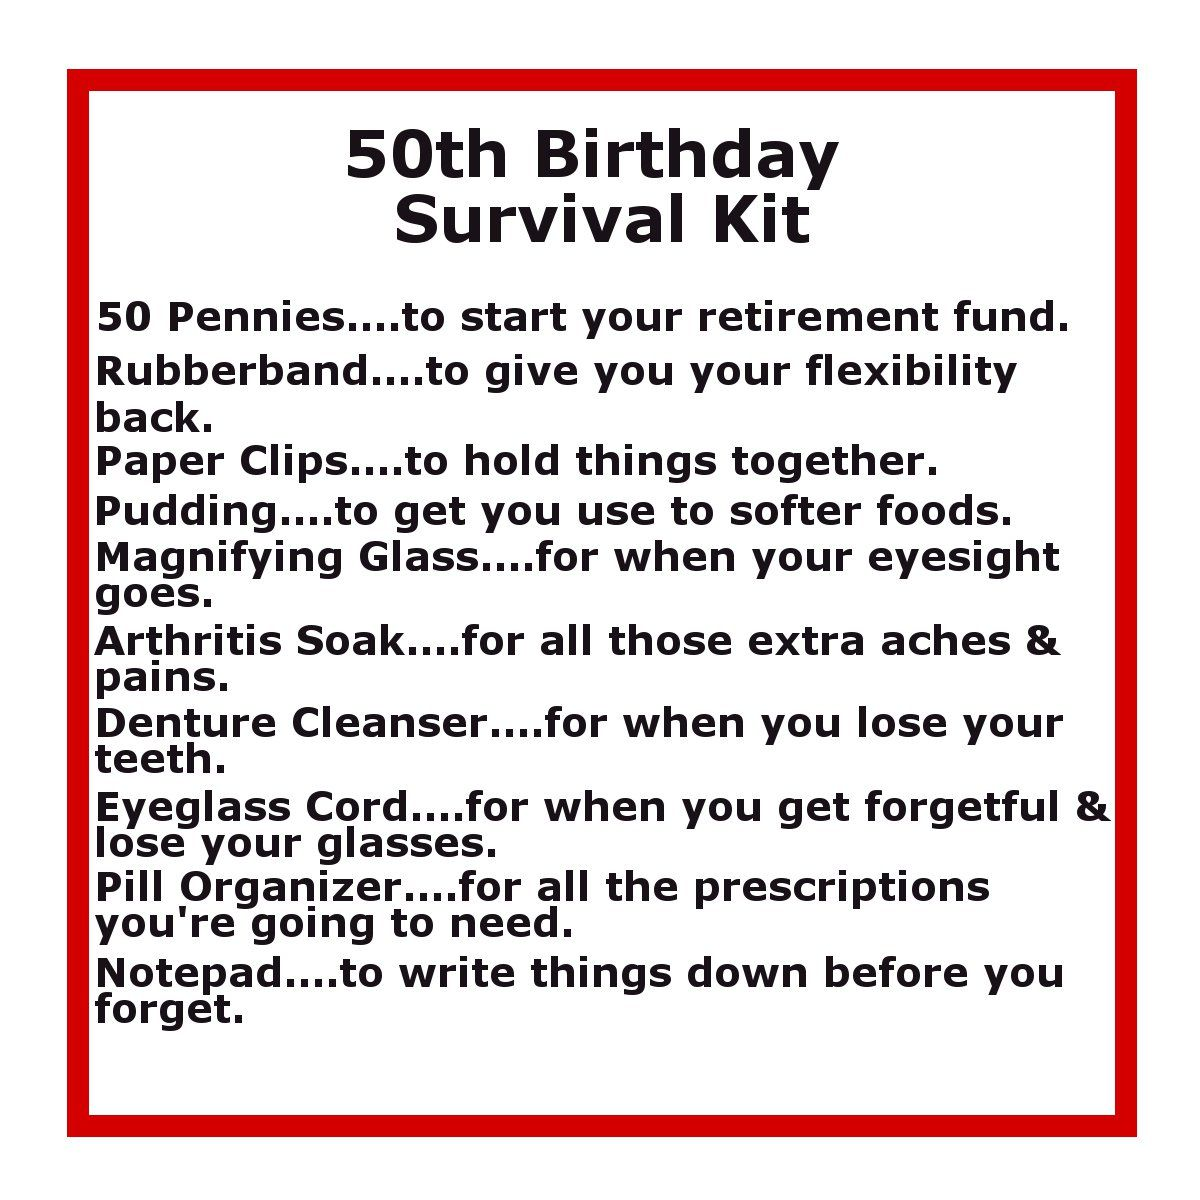 My Mom Is Going To Be 50 This Year May Need 1 Day Delightfully Noted 50th Birthday Survival Kit For Some People Real Soon